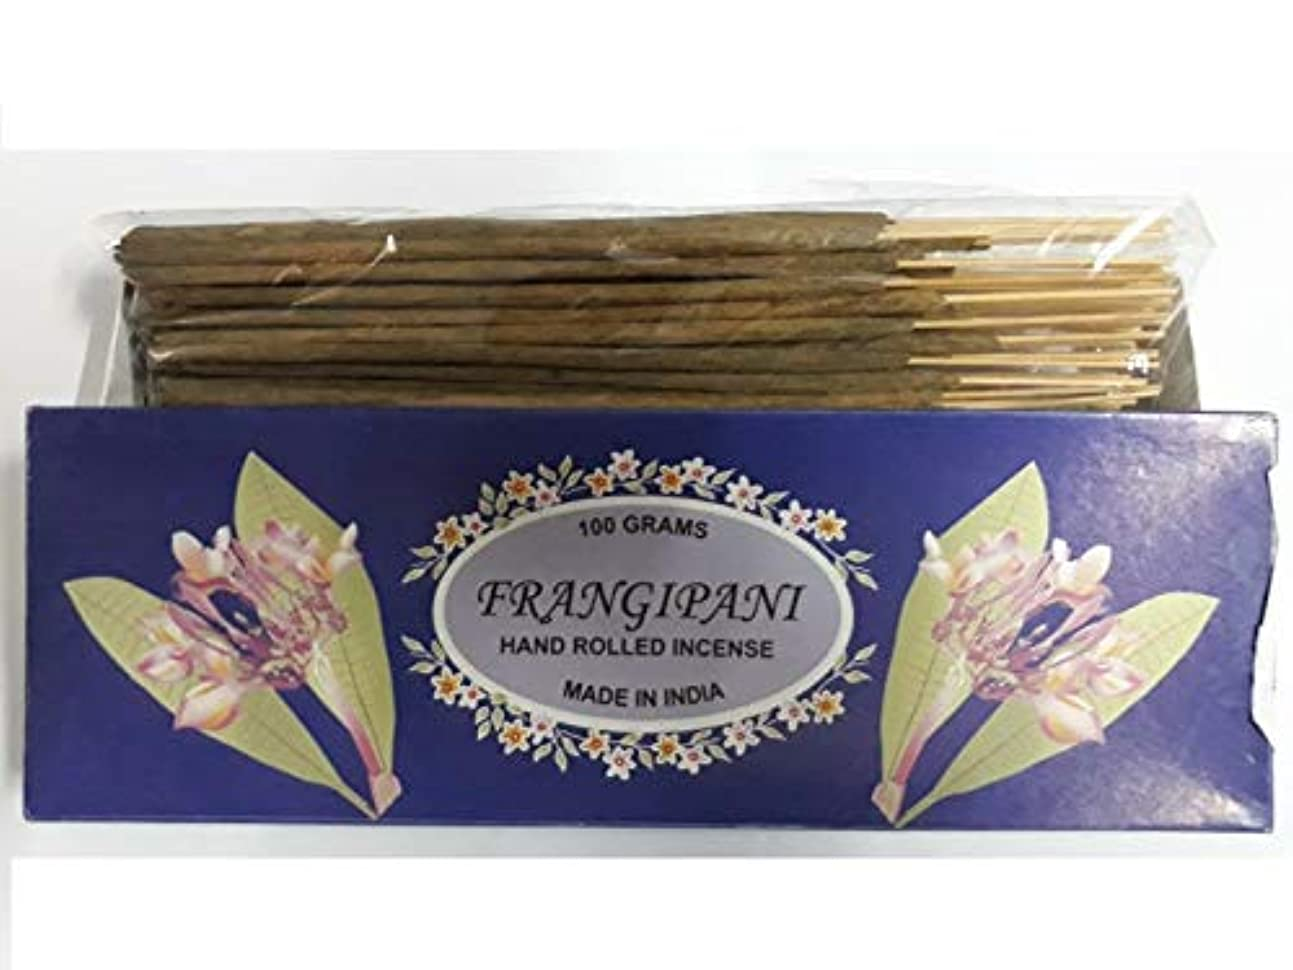 空白ずらすボイドFrangipani フランジパニ Agarbatti Incense Sticks 線香 100 grams Hand Rolled Incense